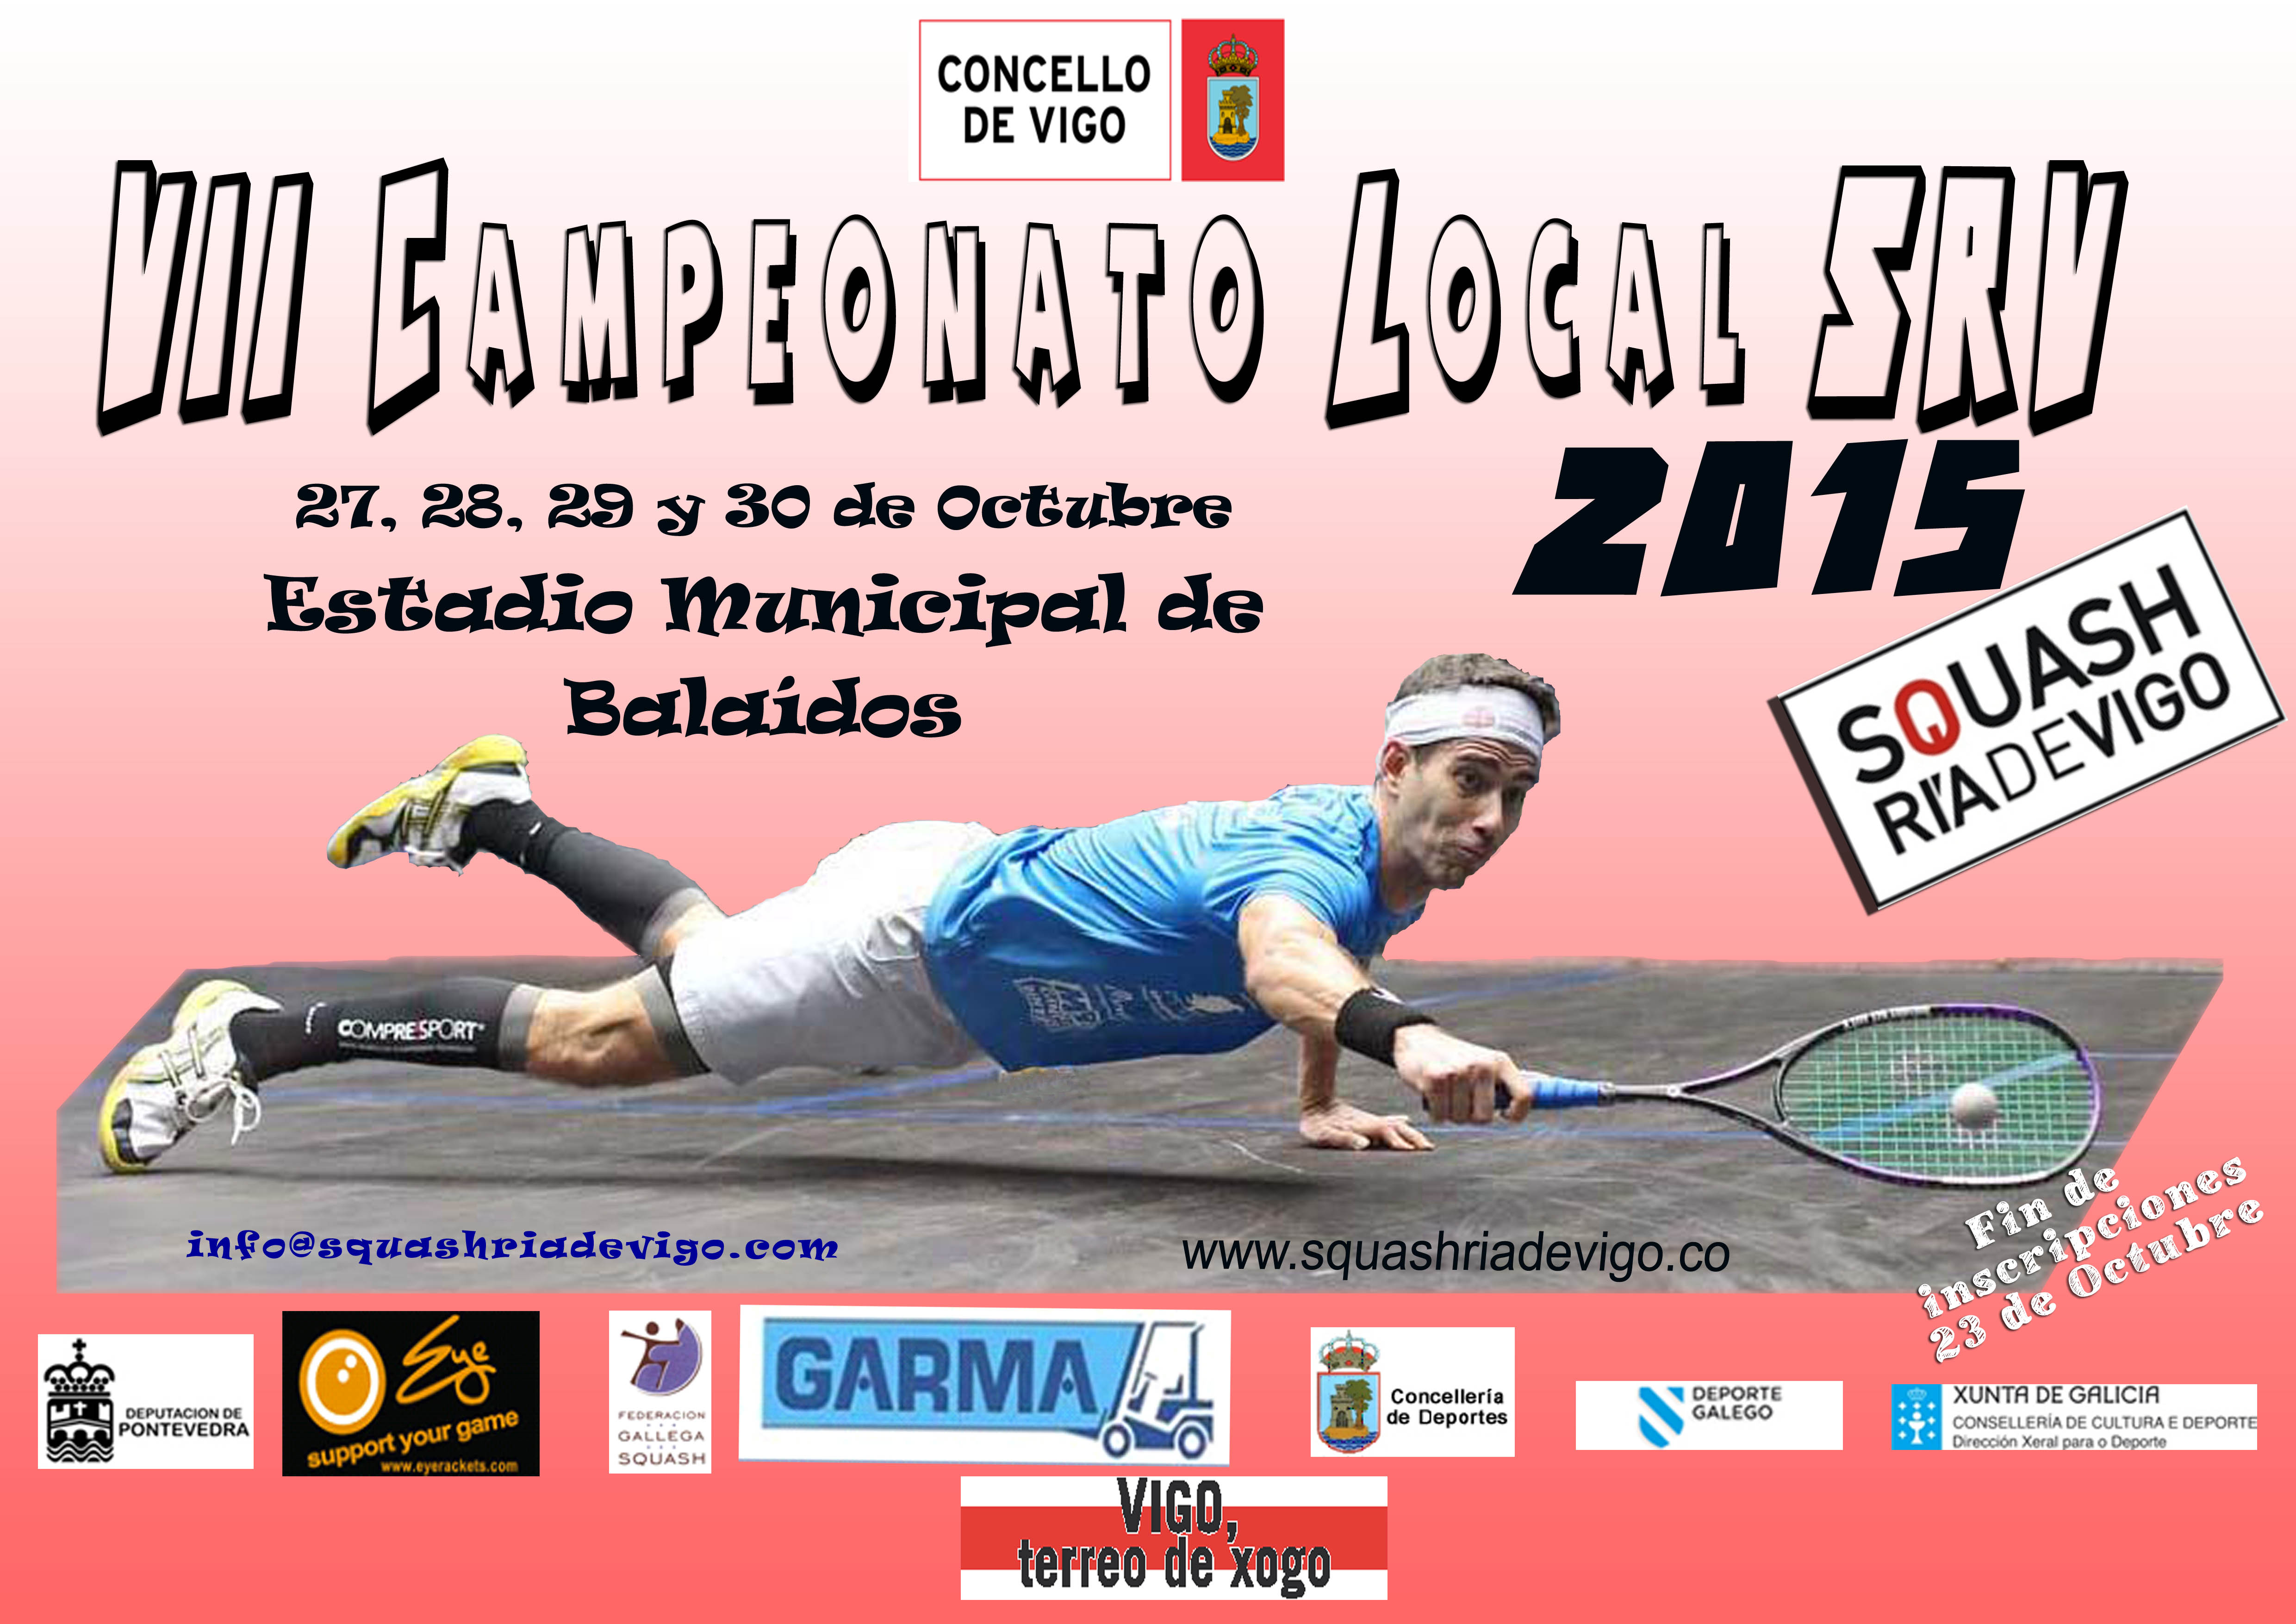 VII Campeonato local SRV 2015 m2